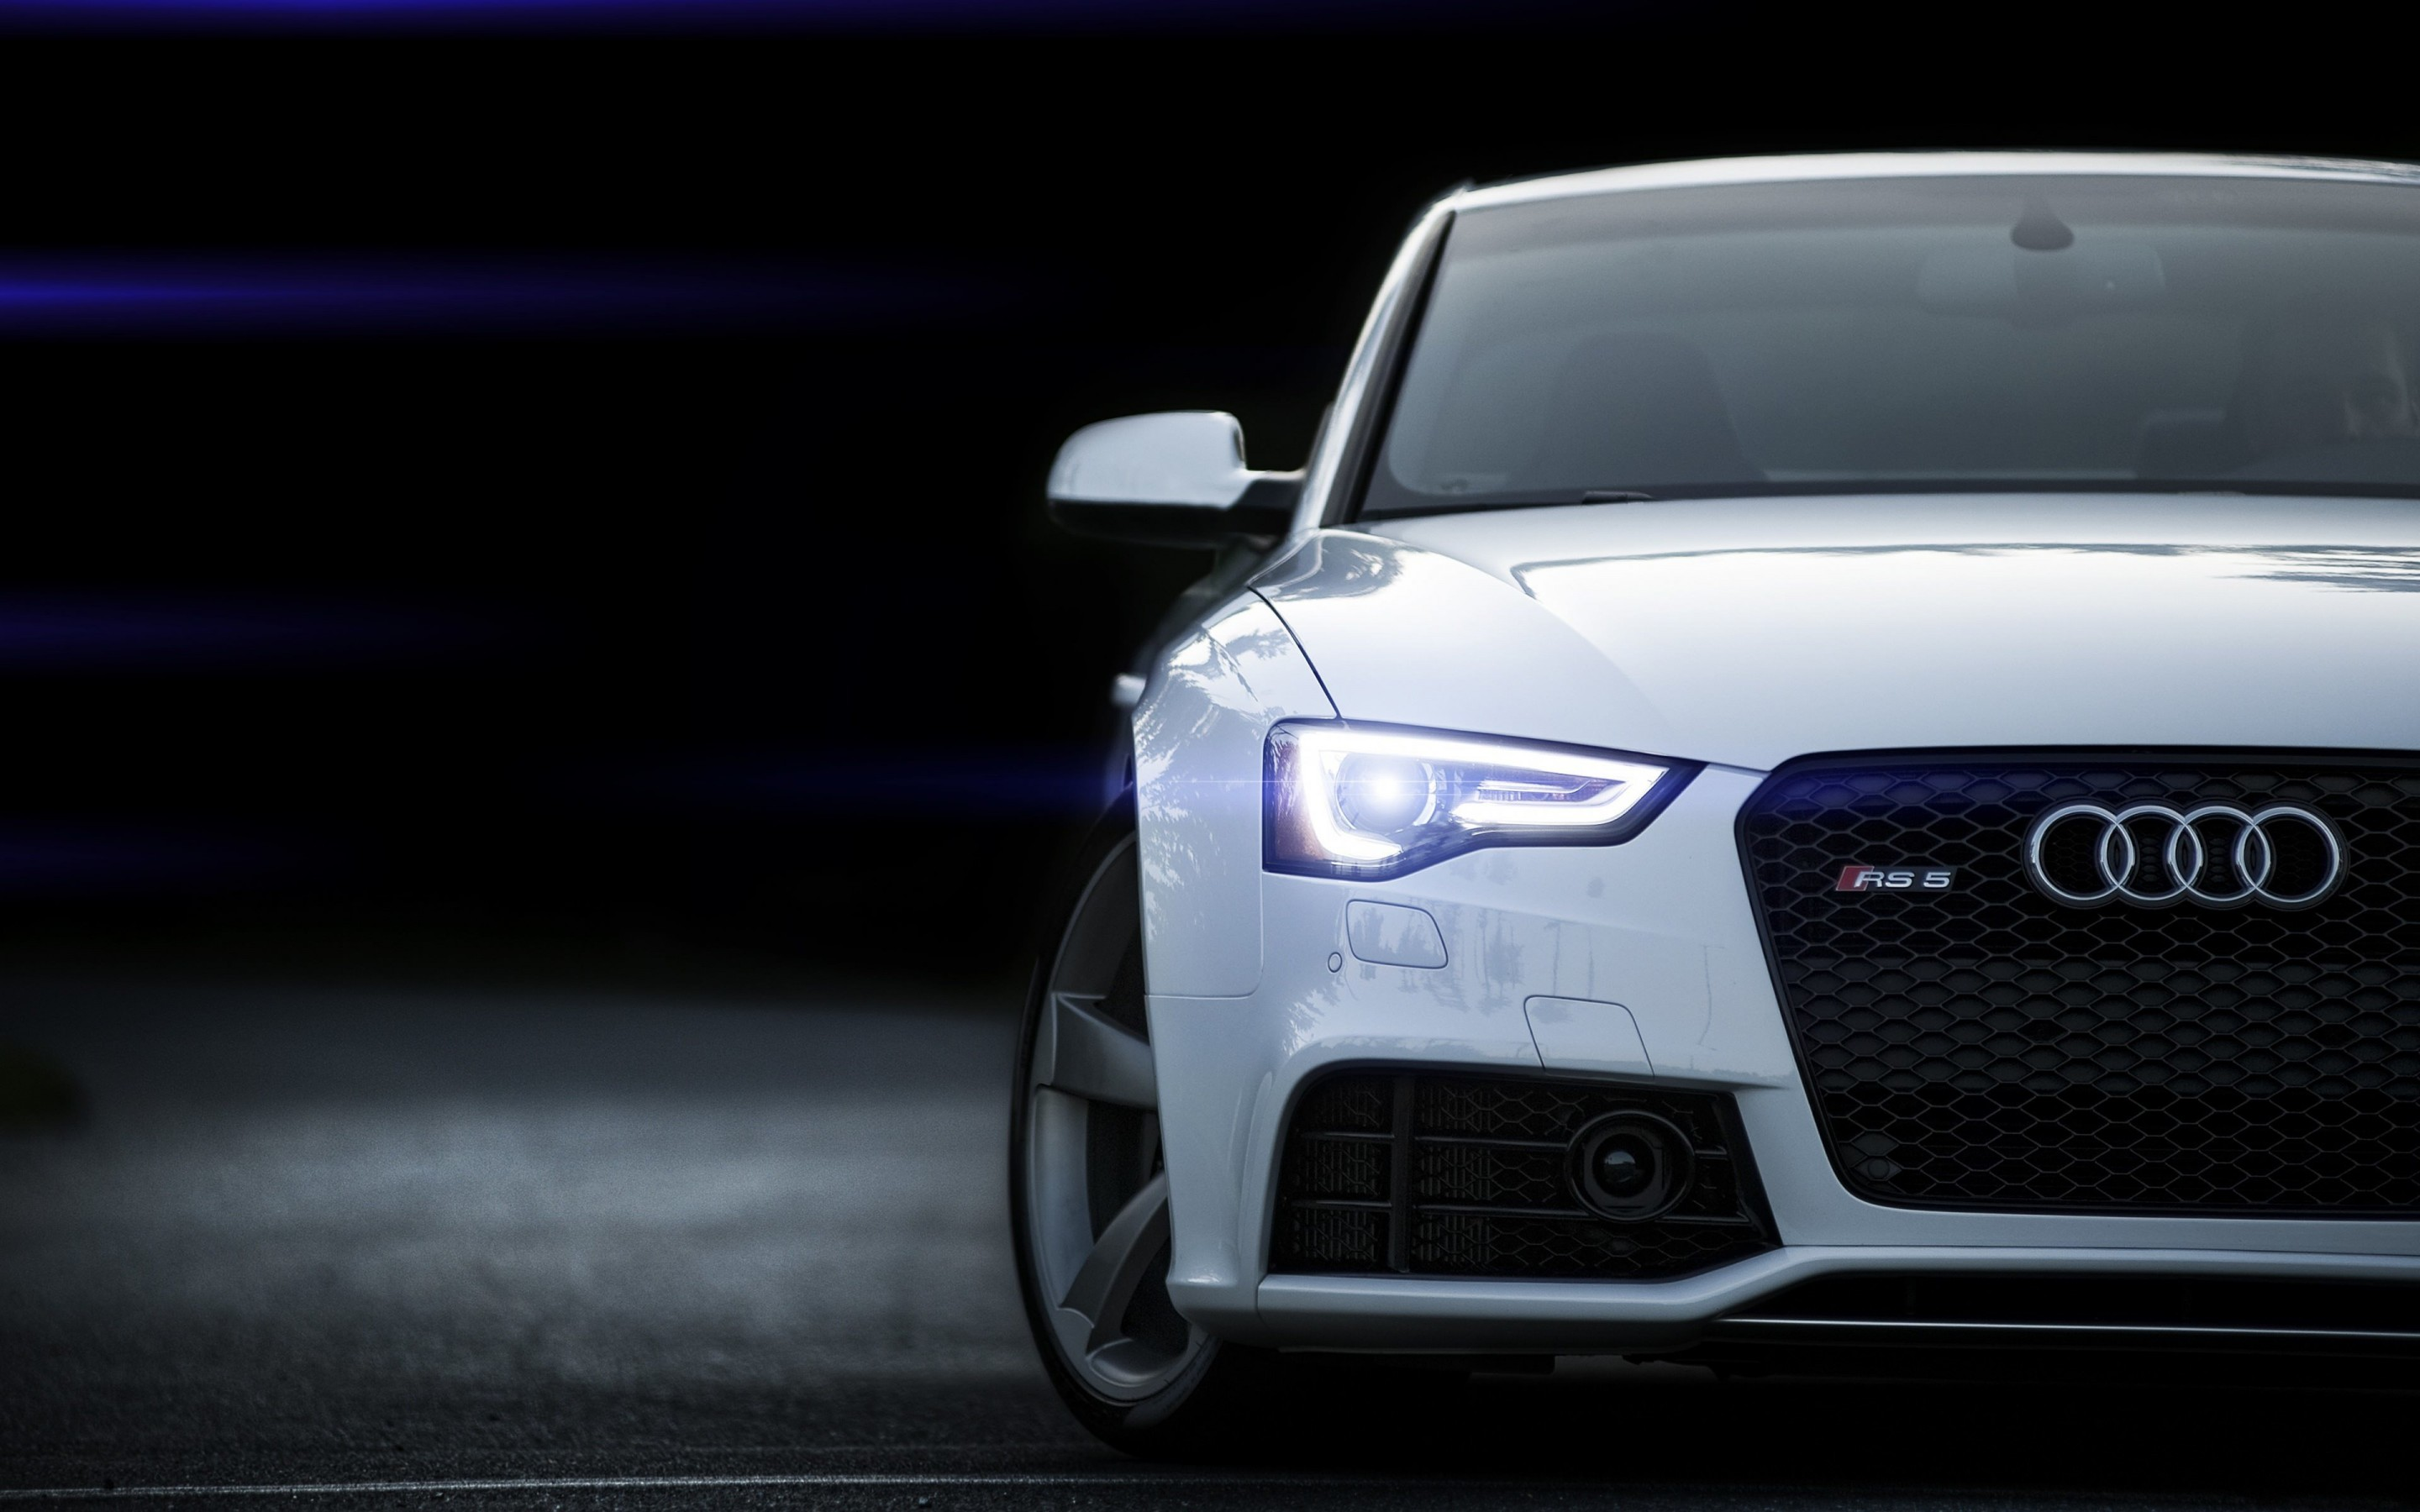 2015 Audi Rs 5 Coupe Hd Wallpaper For 2880x1800 Screens